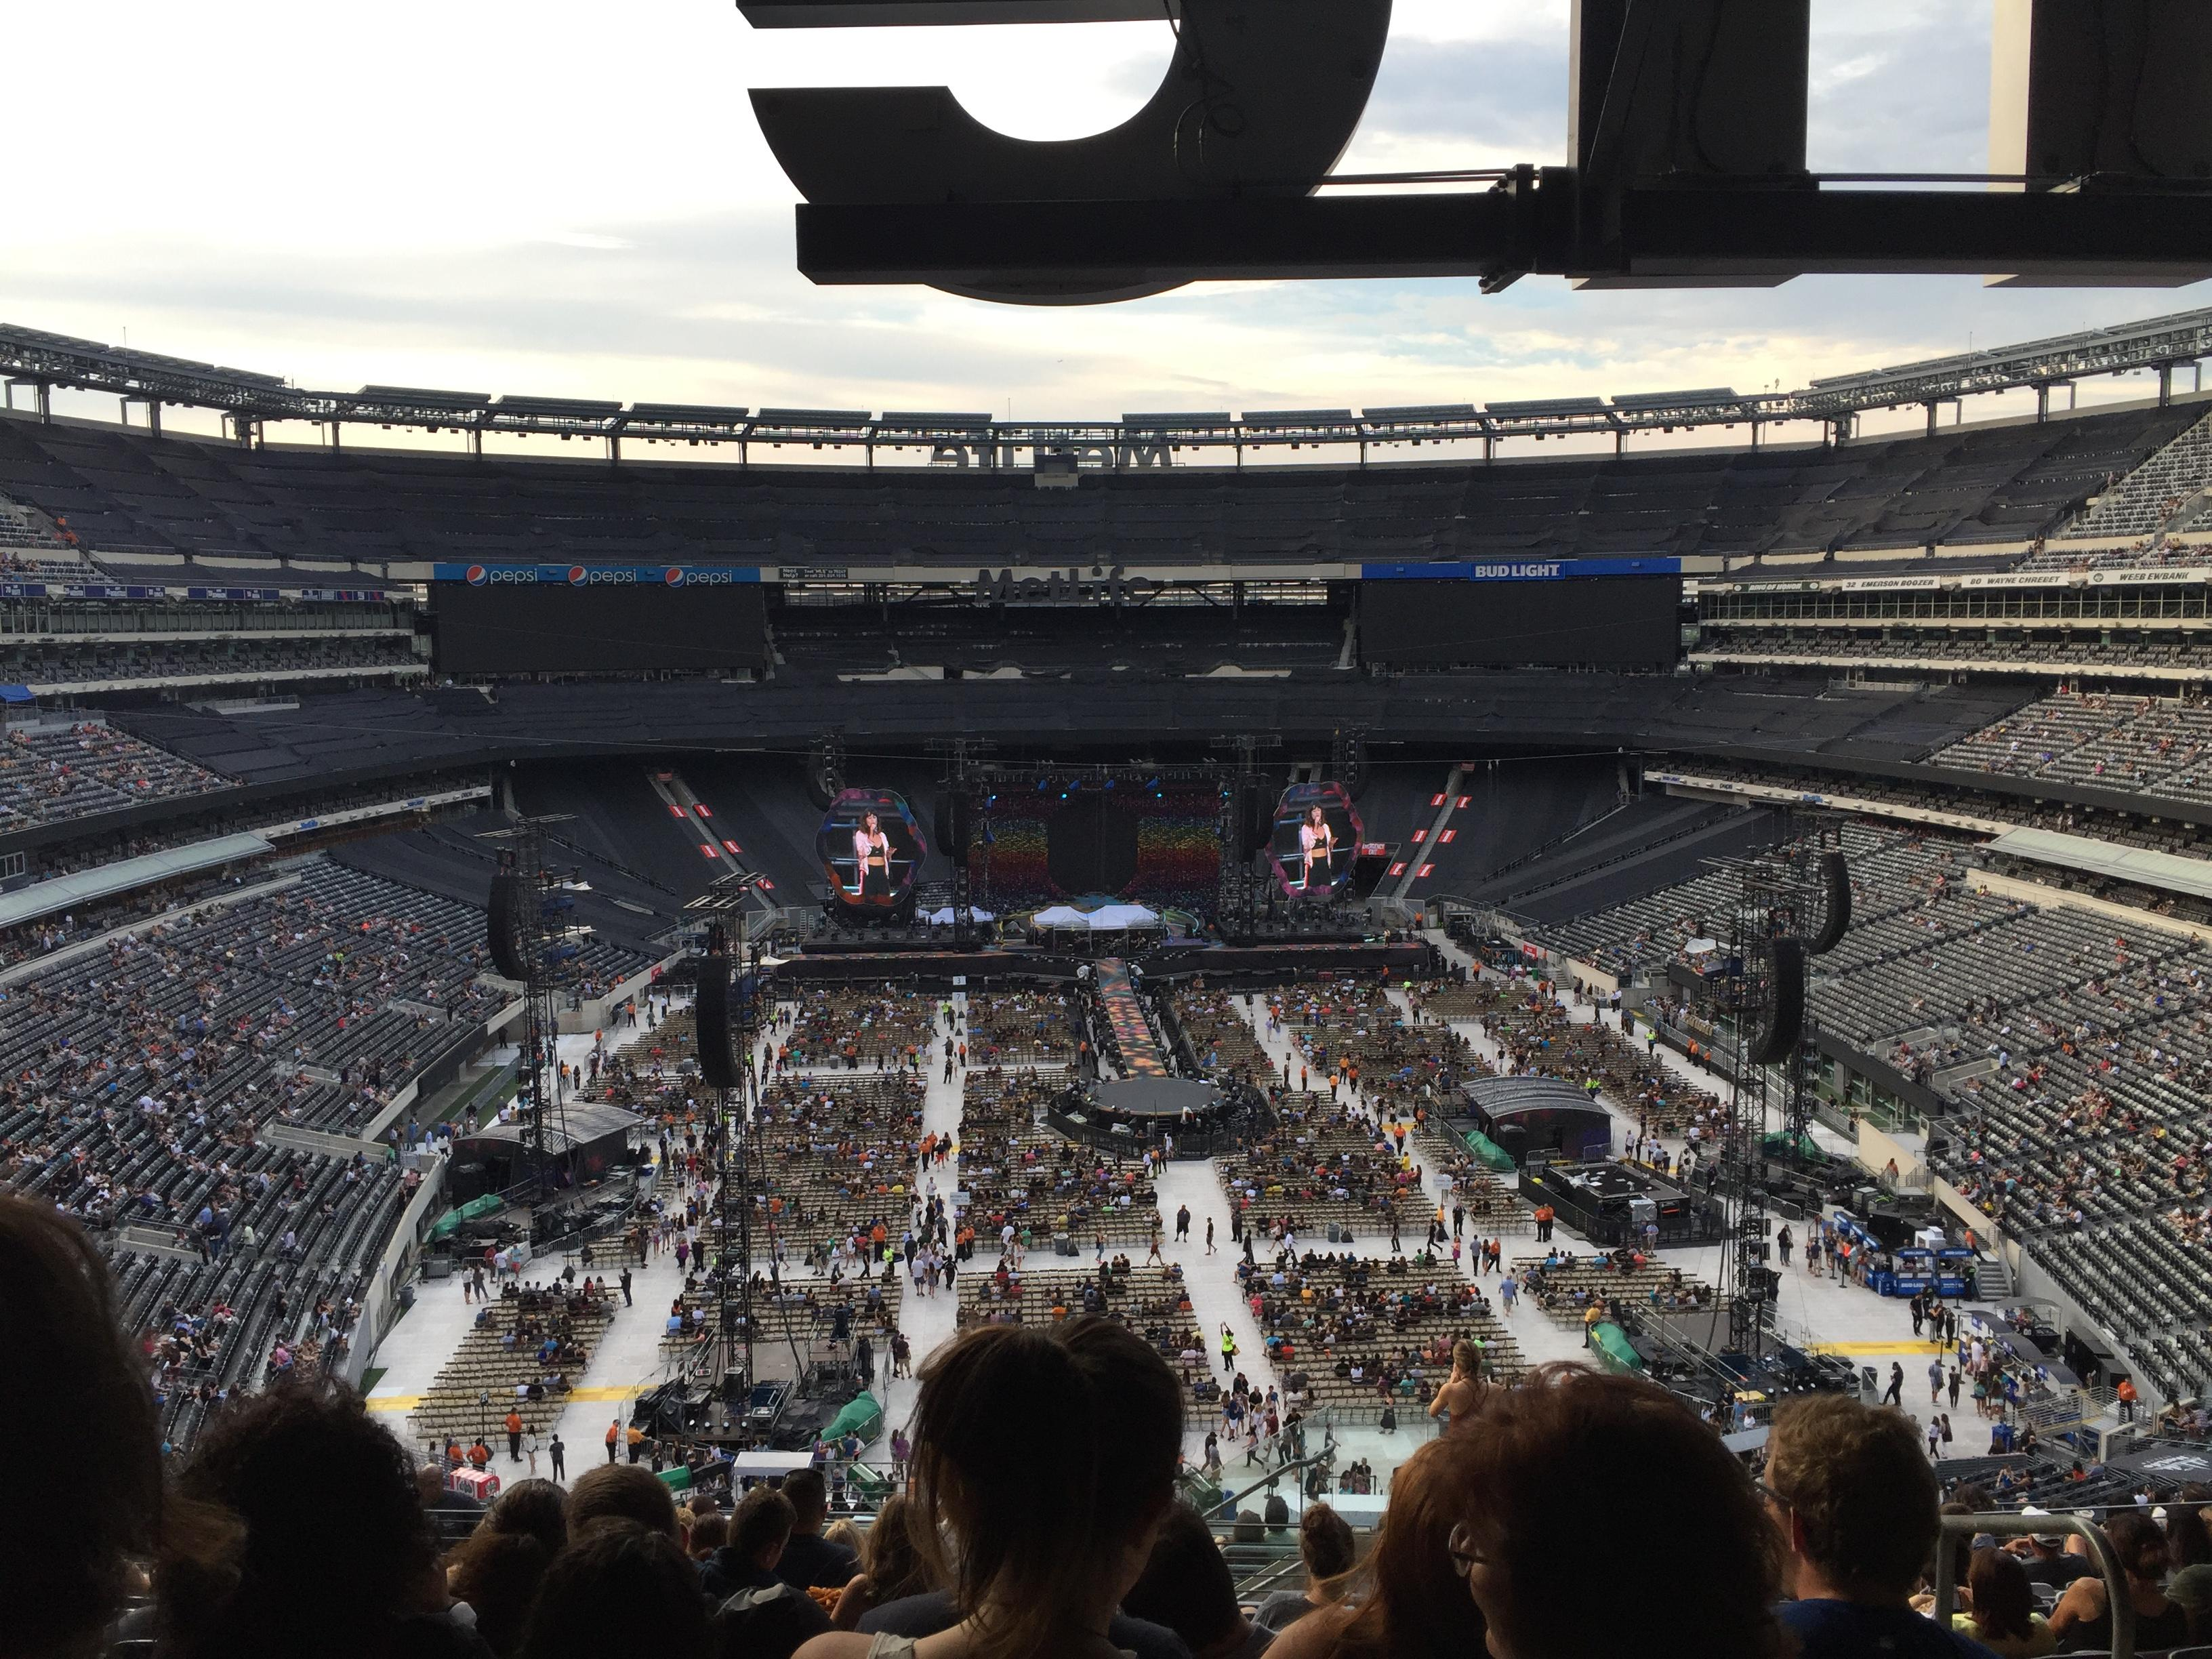 MetLife Stadium Section 227B Row 15 Seat 2